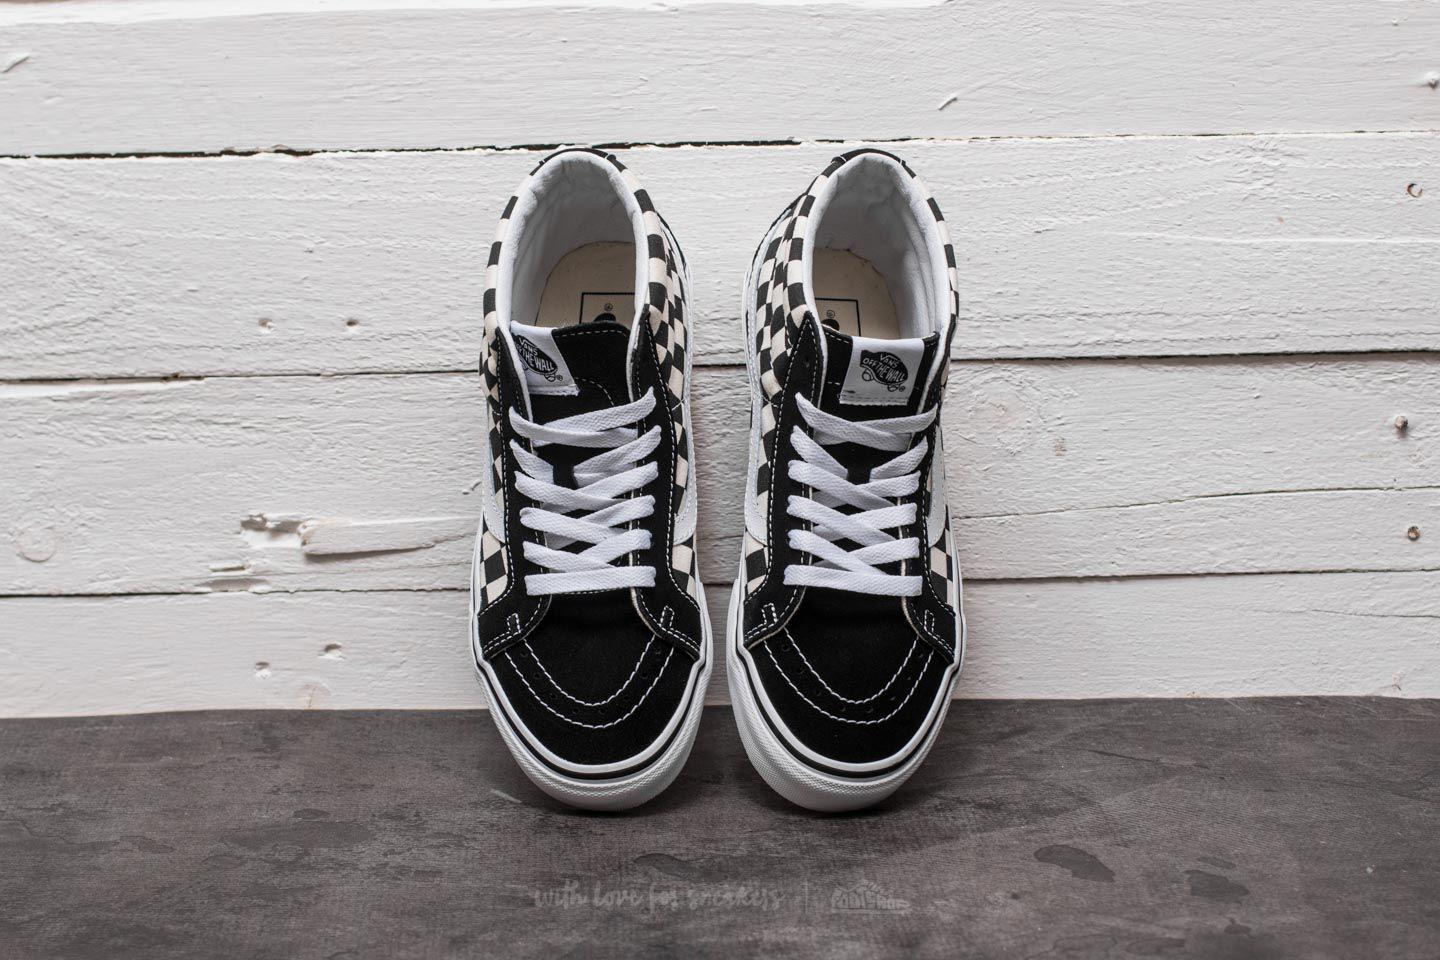 top-rated professional suitable for men/women 100% high quality Sk8-mid Reissue Checkerboard/ True White